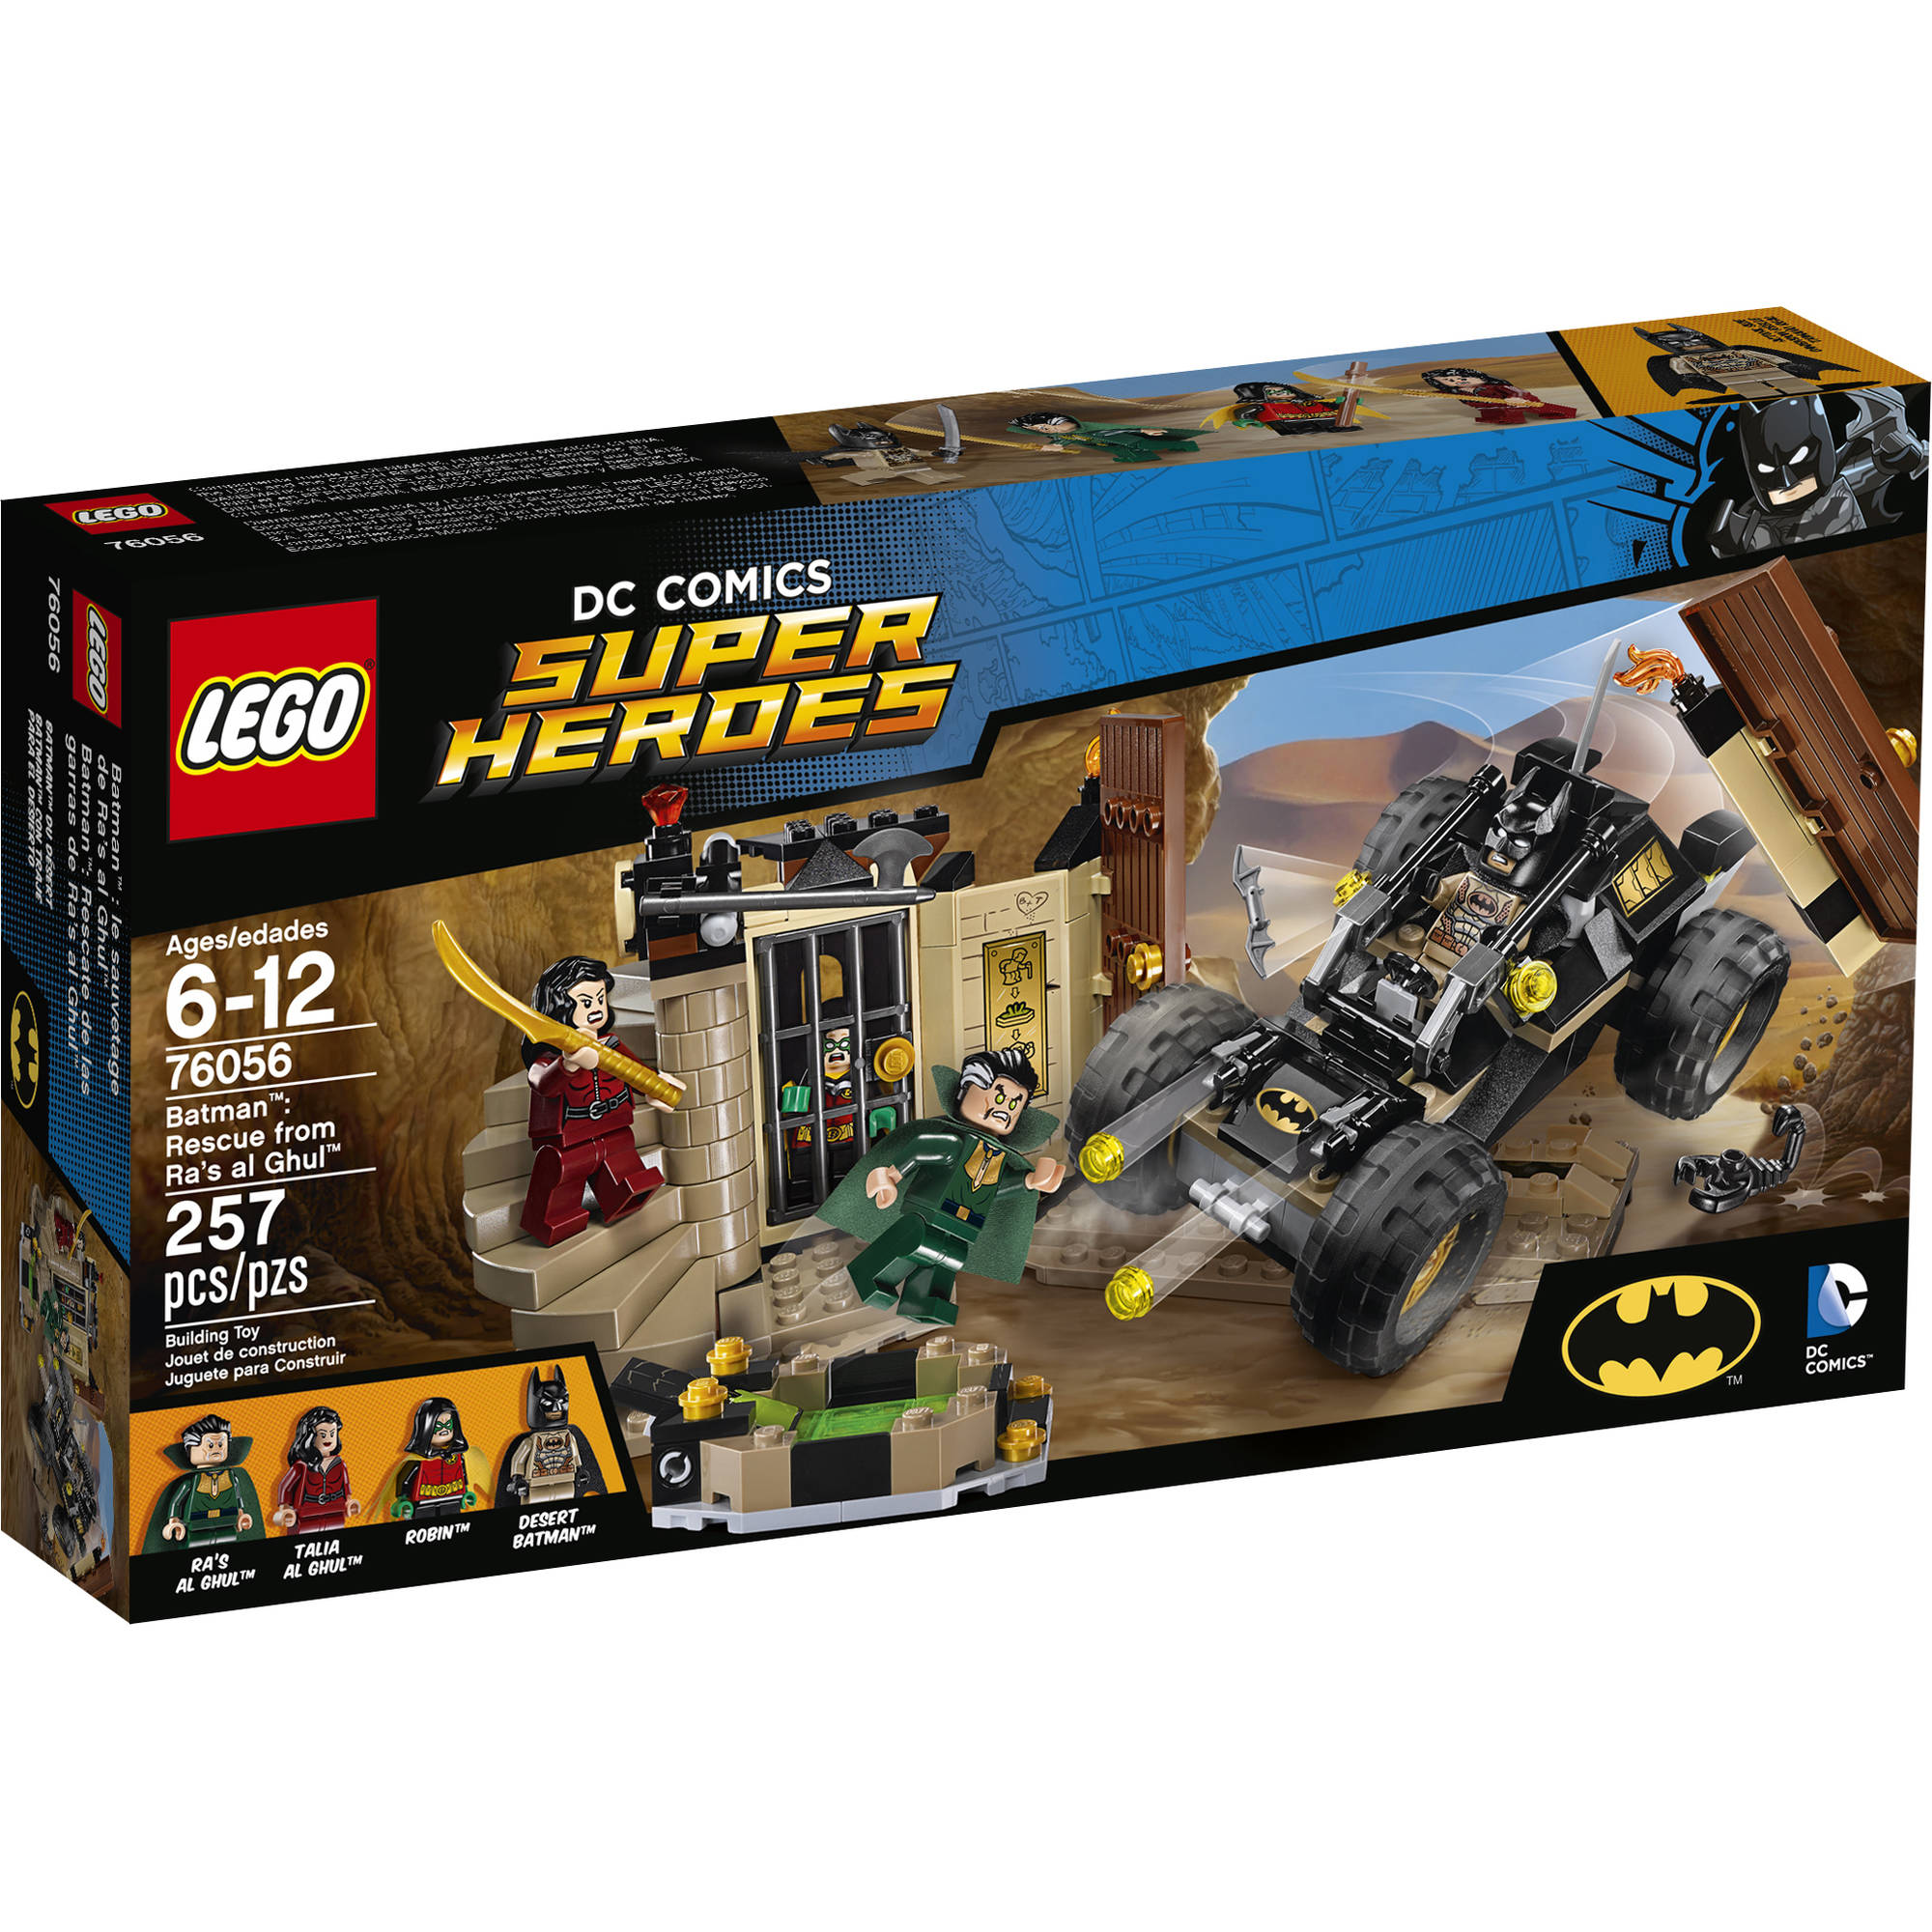 Lego Super Heroes Batman: Rescue from Ra's al Ghul 76056 by LEGO Systems, Inc.